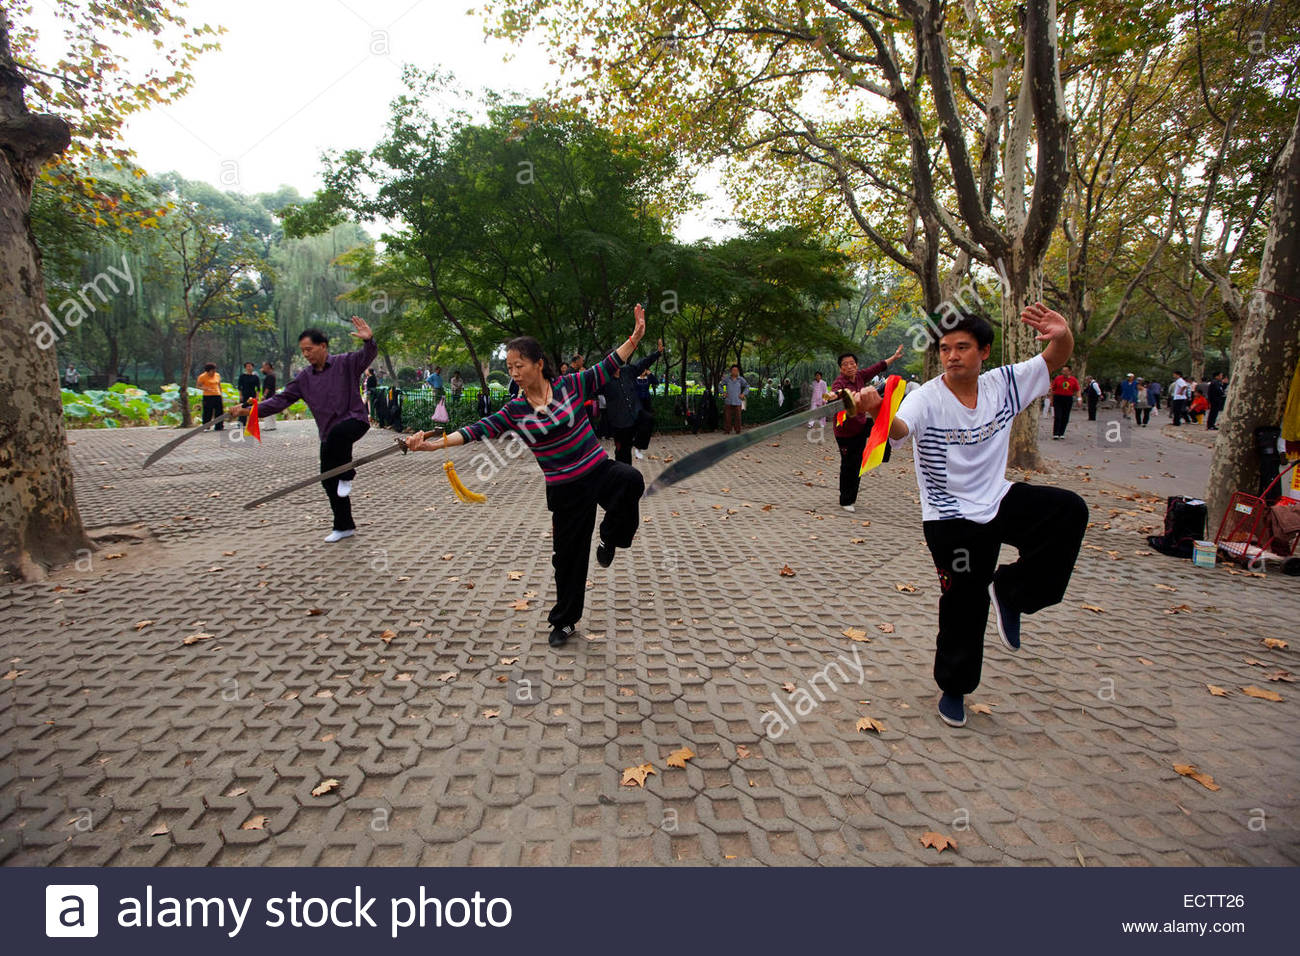 Shanghai, People practicing Tai Chi in Fengshuia Luxun park. - Stock Image